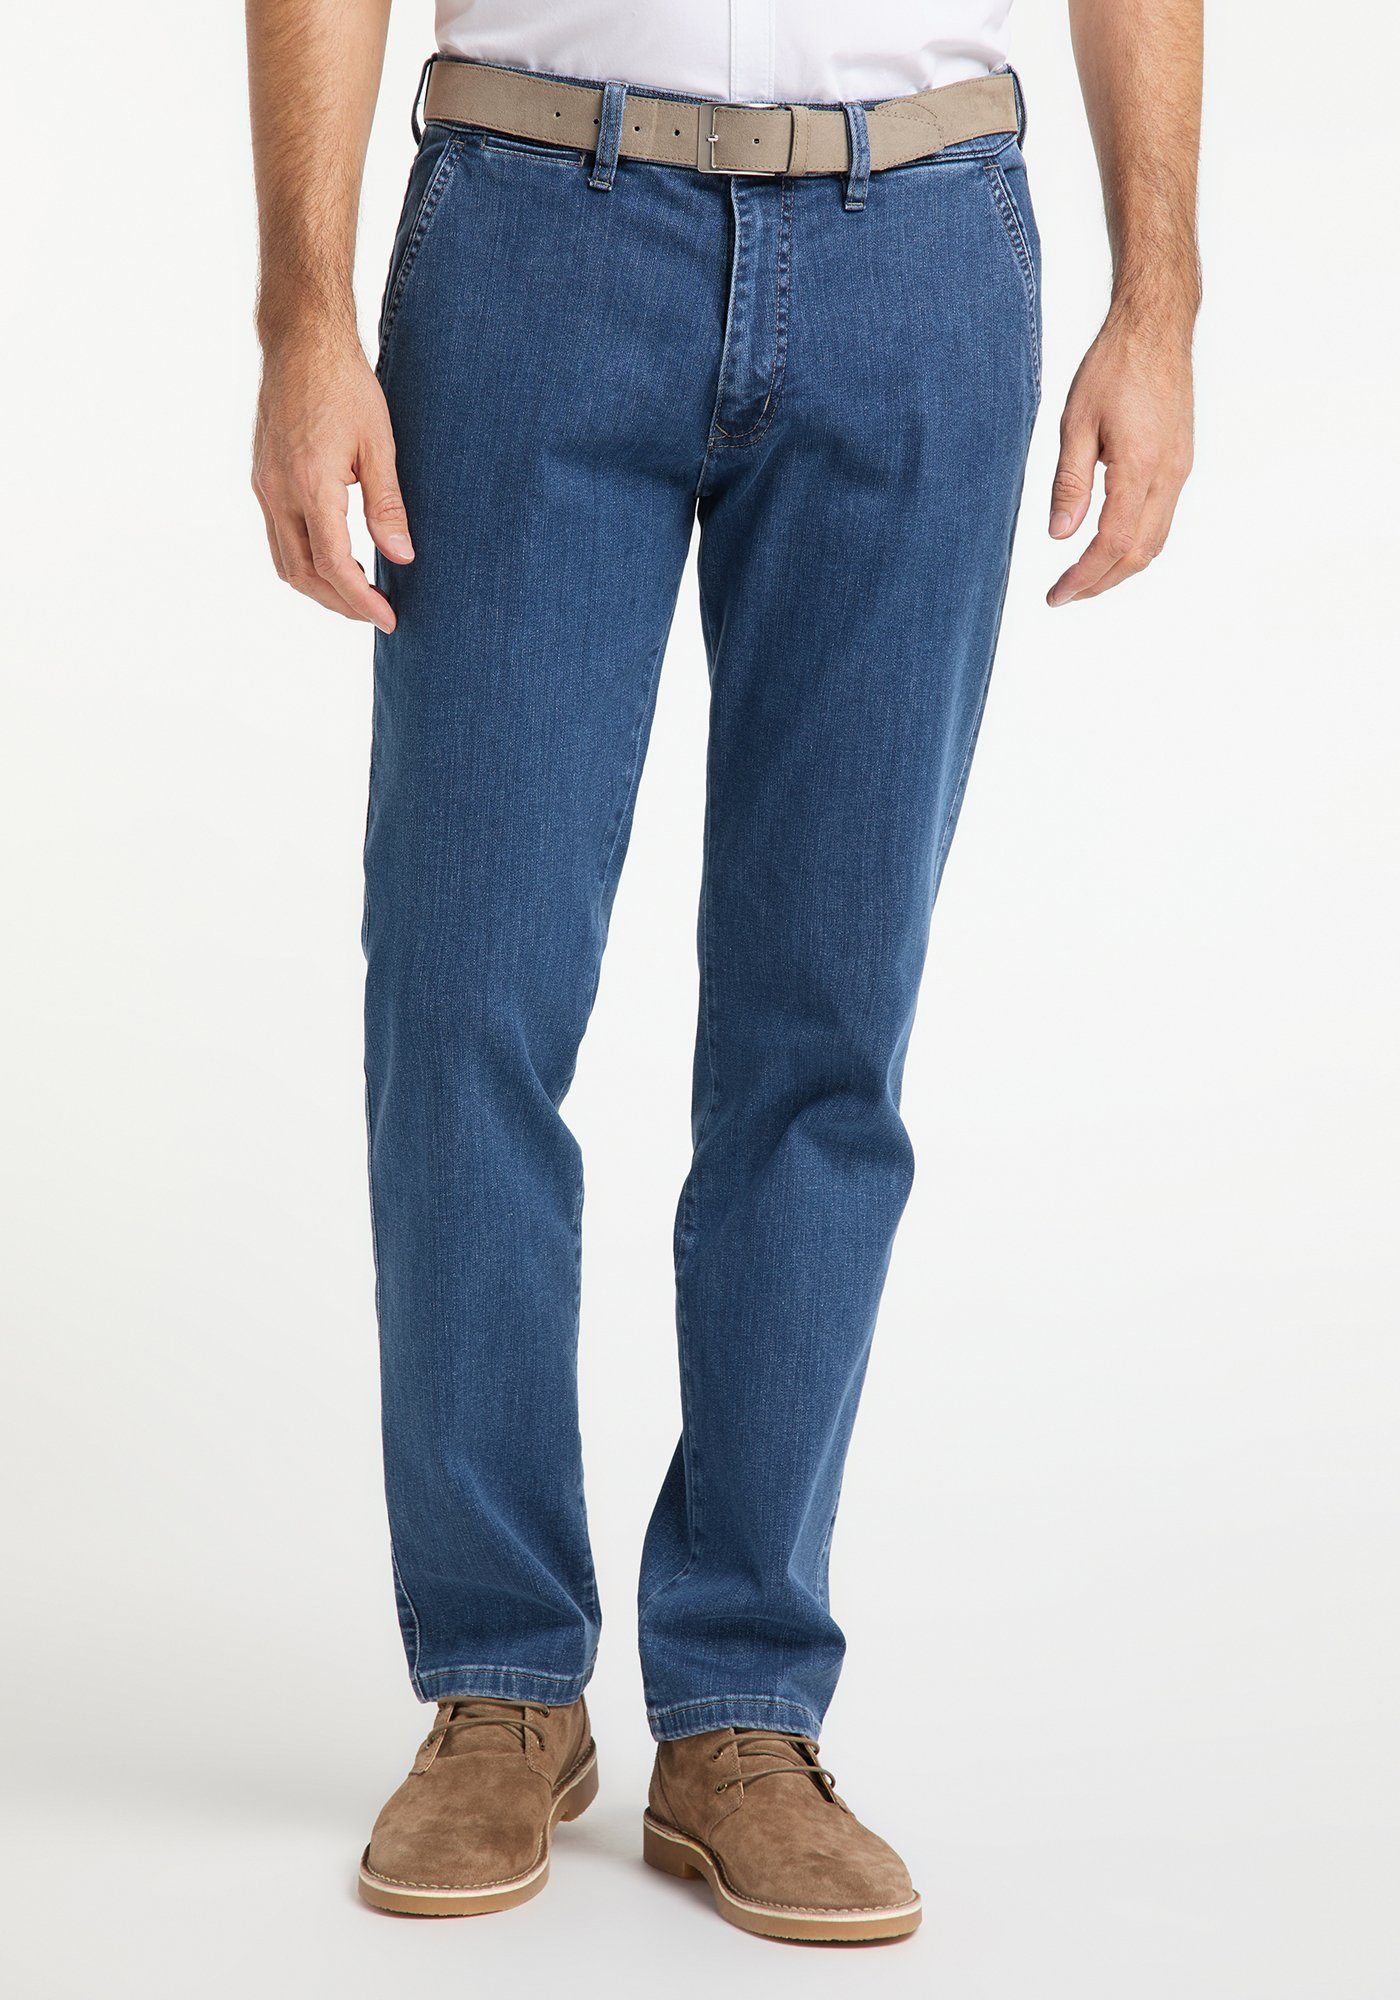 Pioneer Authentic Jeans ROBERT Straight leg jeans blue